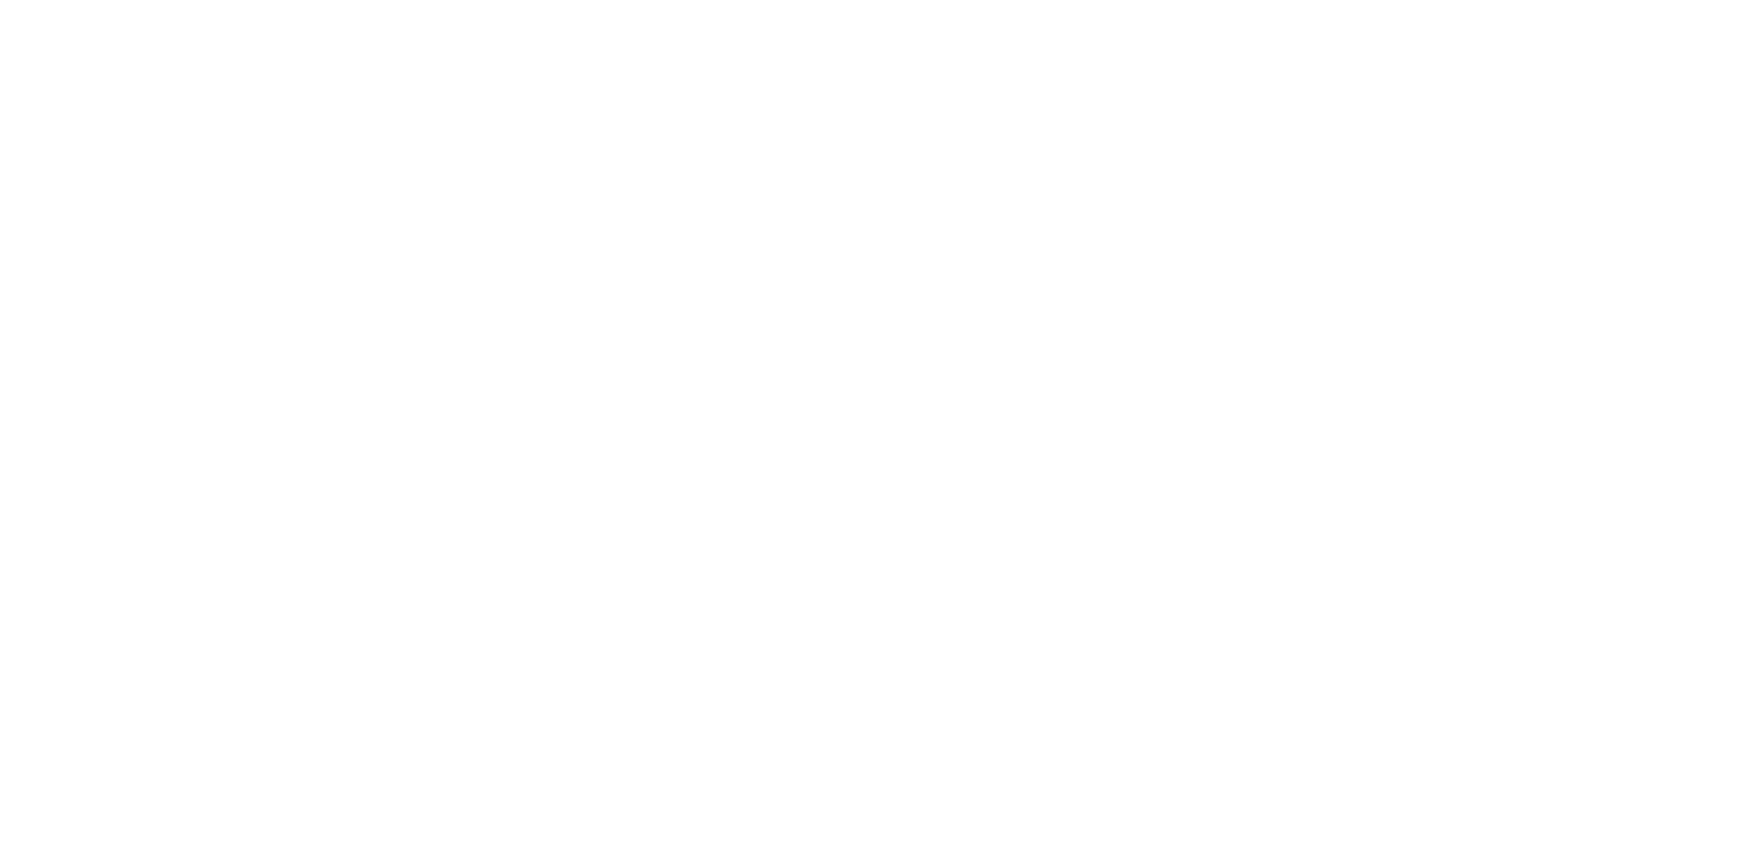 The Hoppe Law Firm LCC - Attorneys at Law Logo